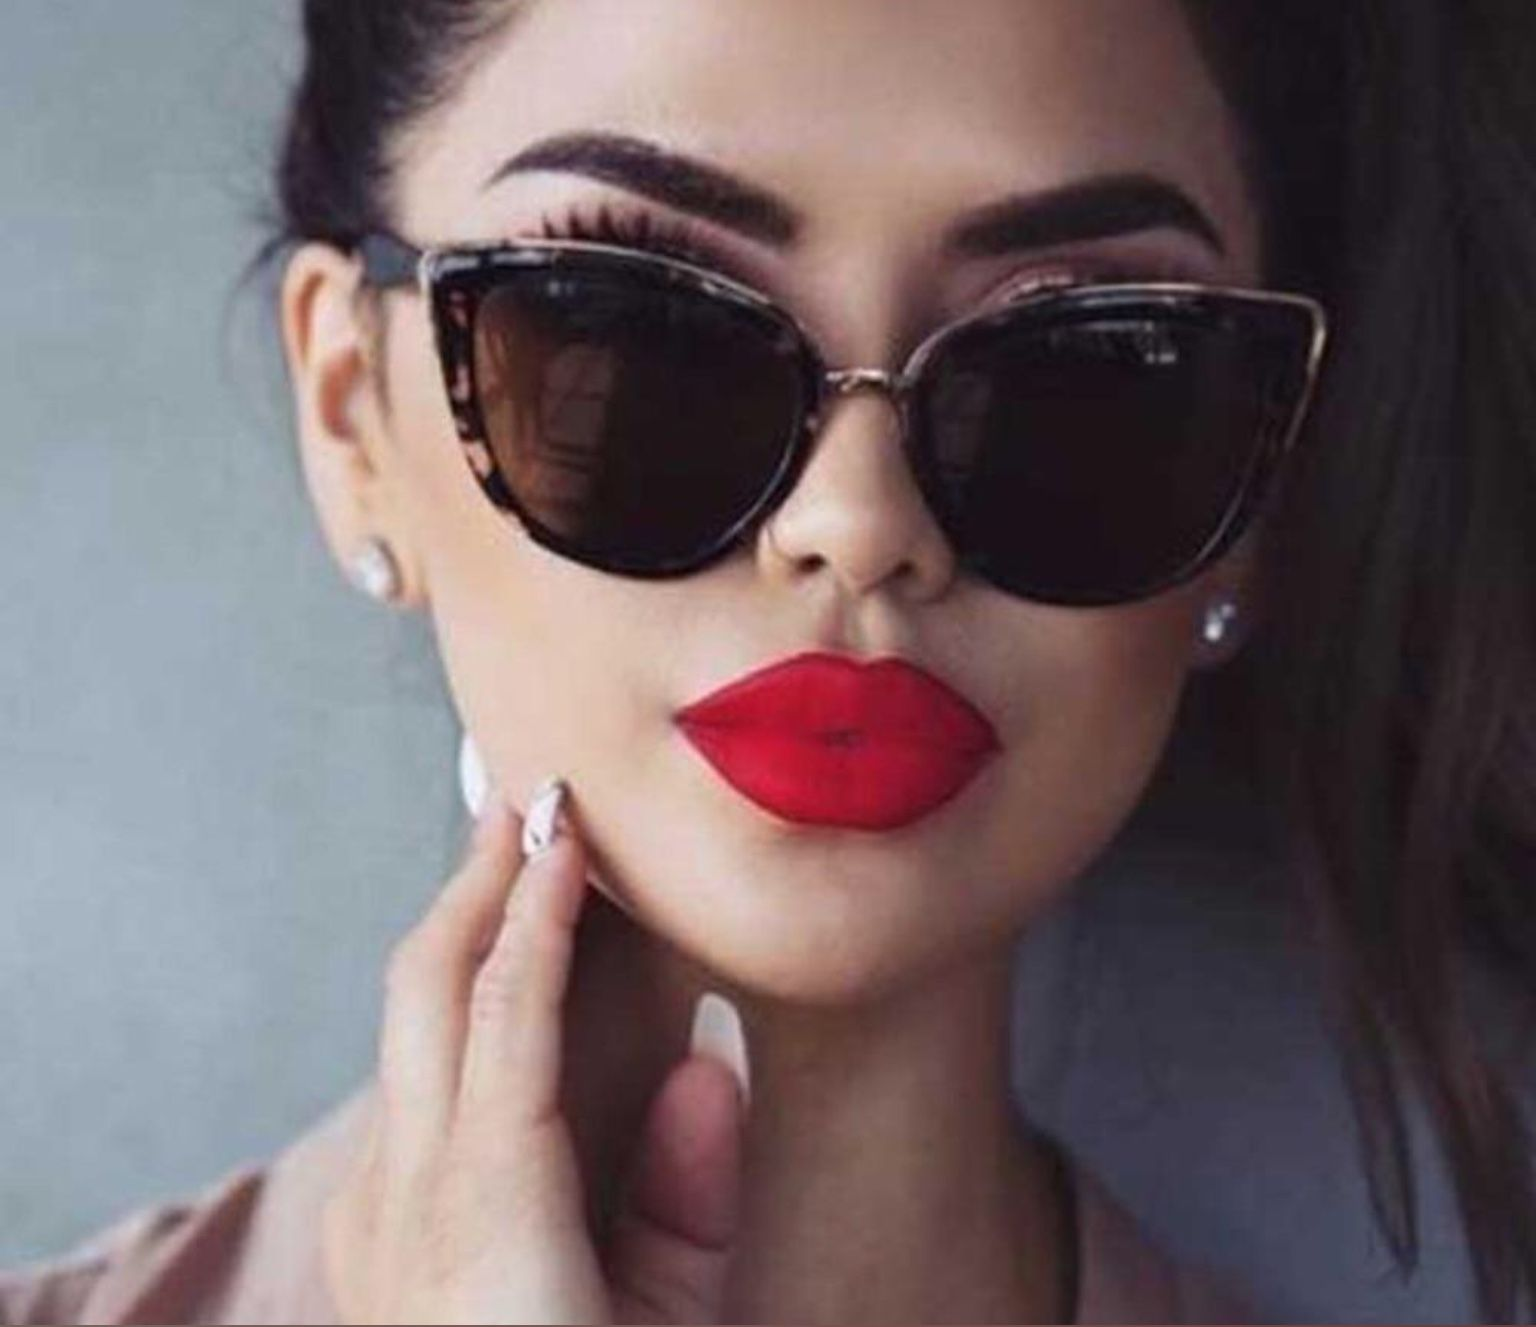 Women Cat Eye Sunglasses Vintage Fashion Style  Sunglasses Shades Red